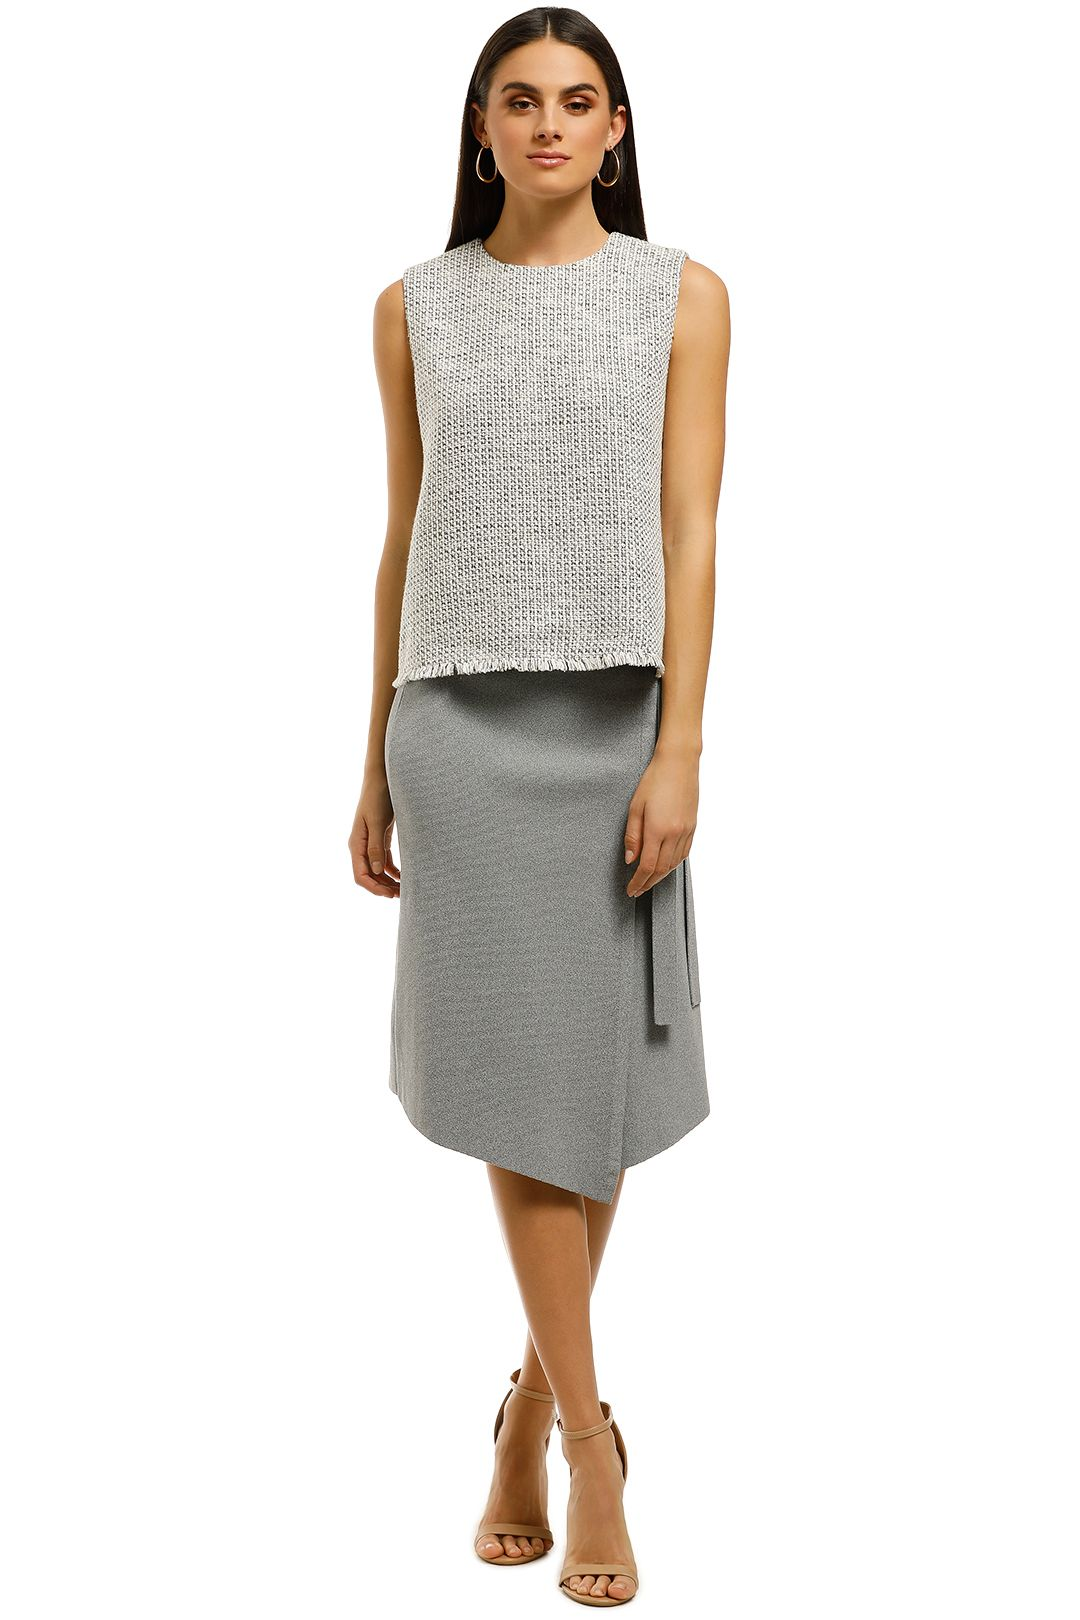 FWRD-The-Label-Jacinta-Tank-Grey-Front